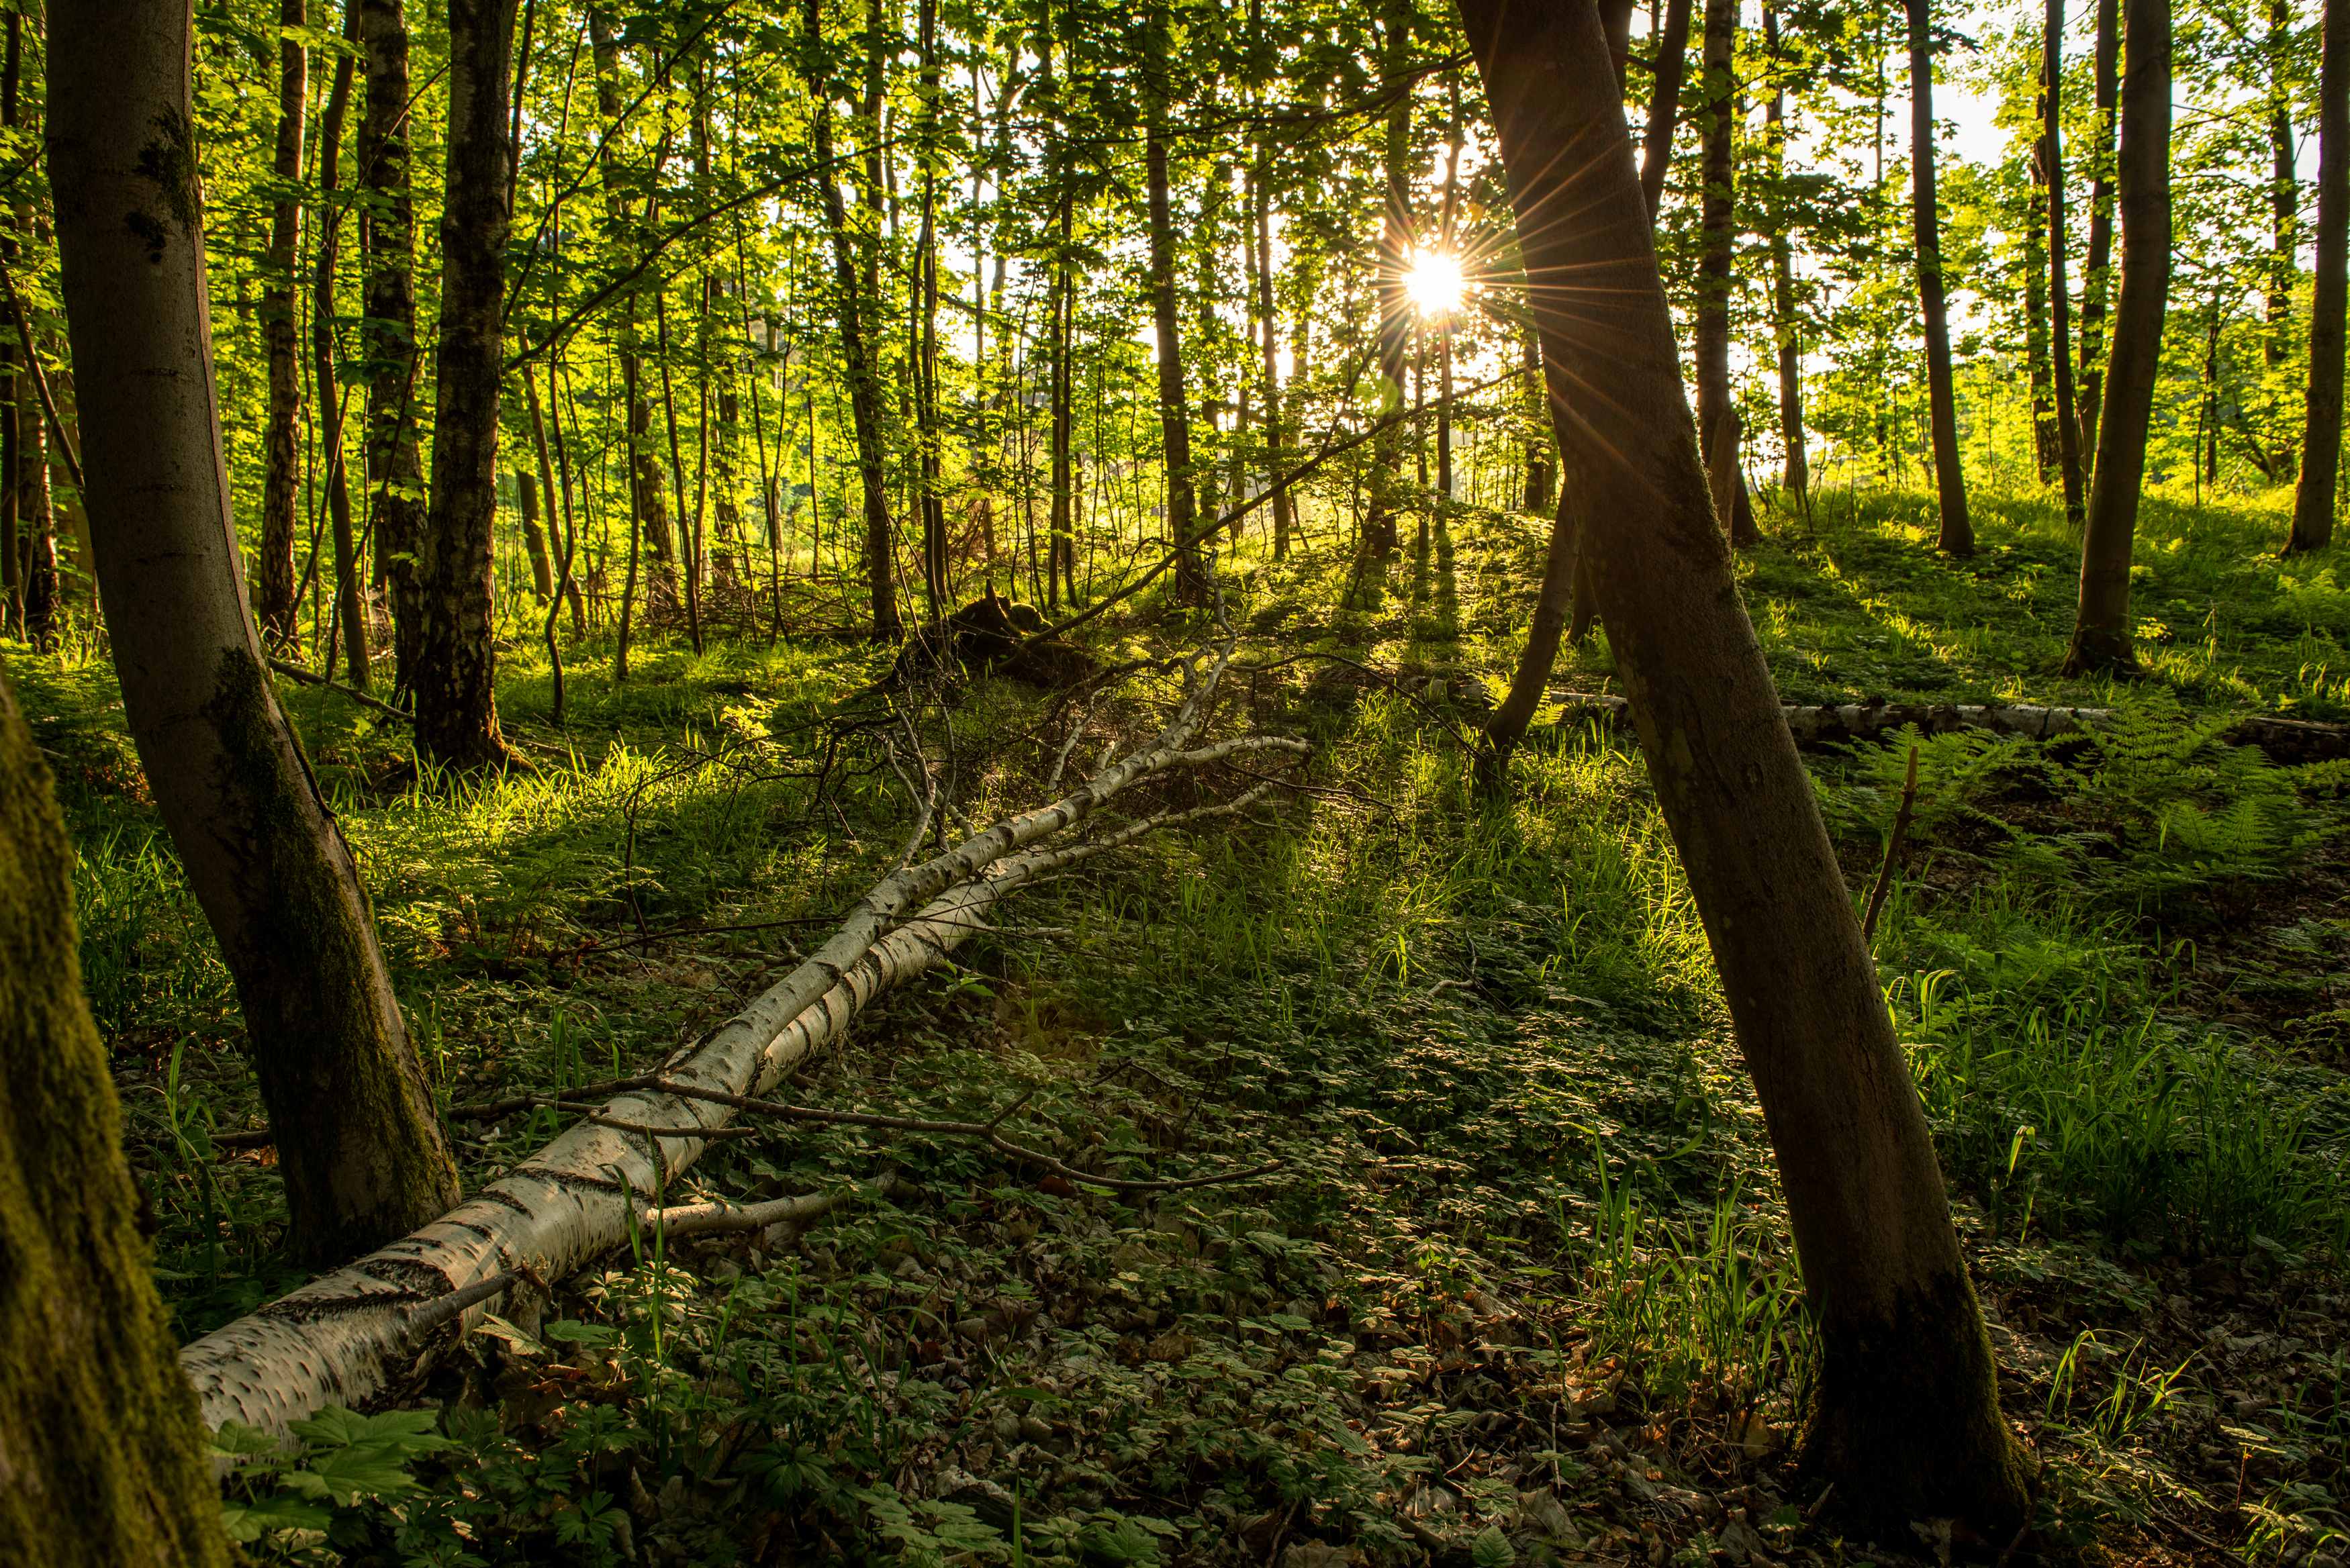 The last rays of the sun through the trees in the woods